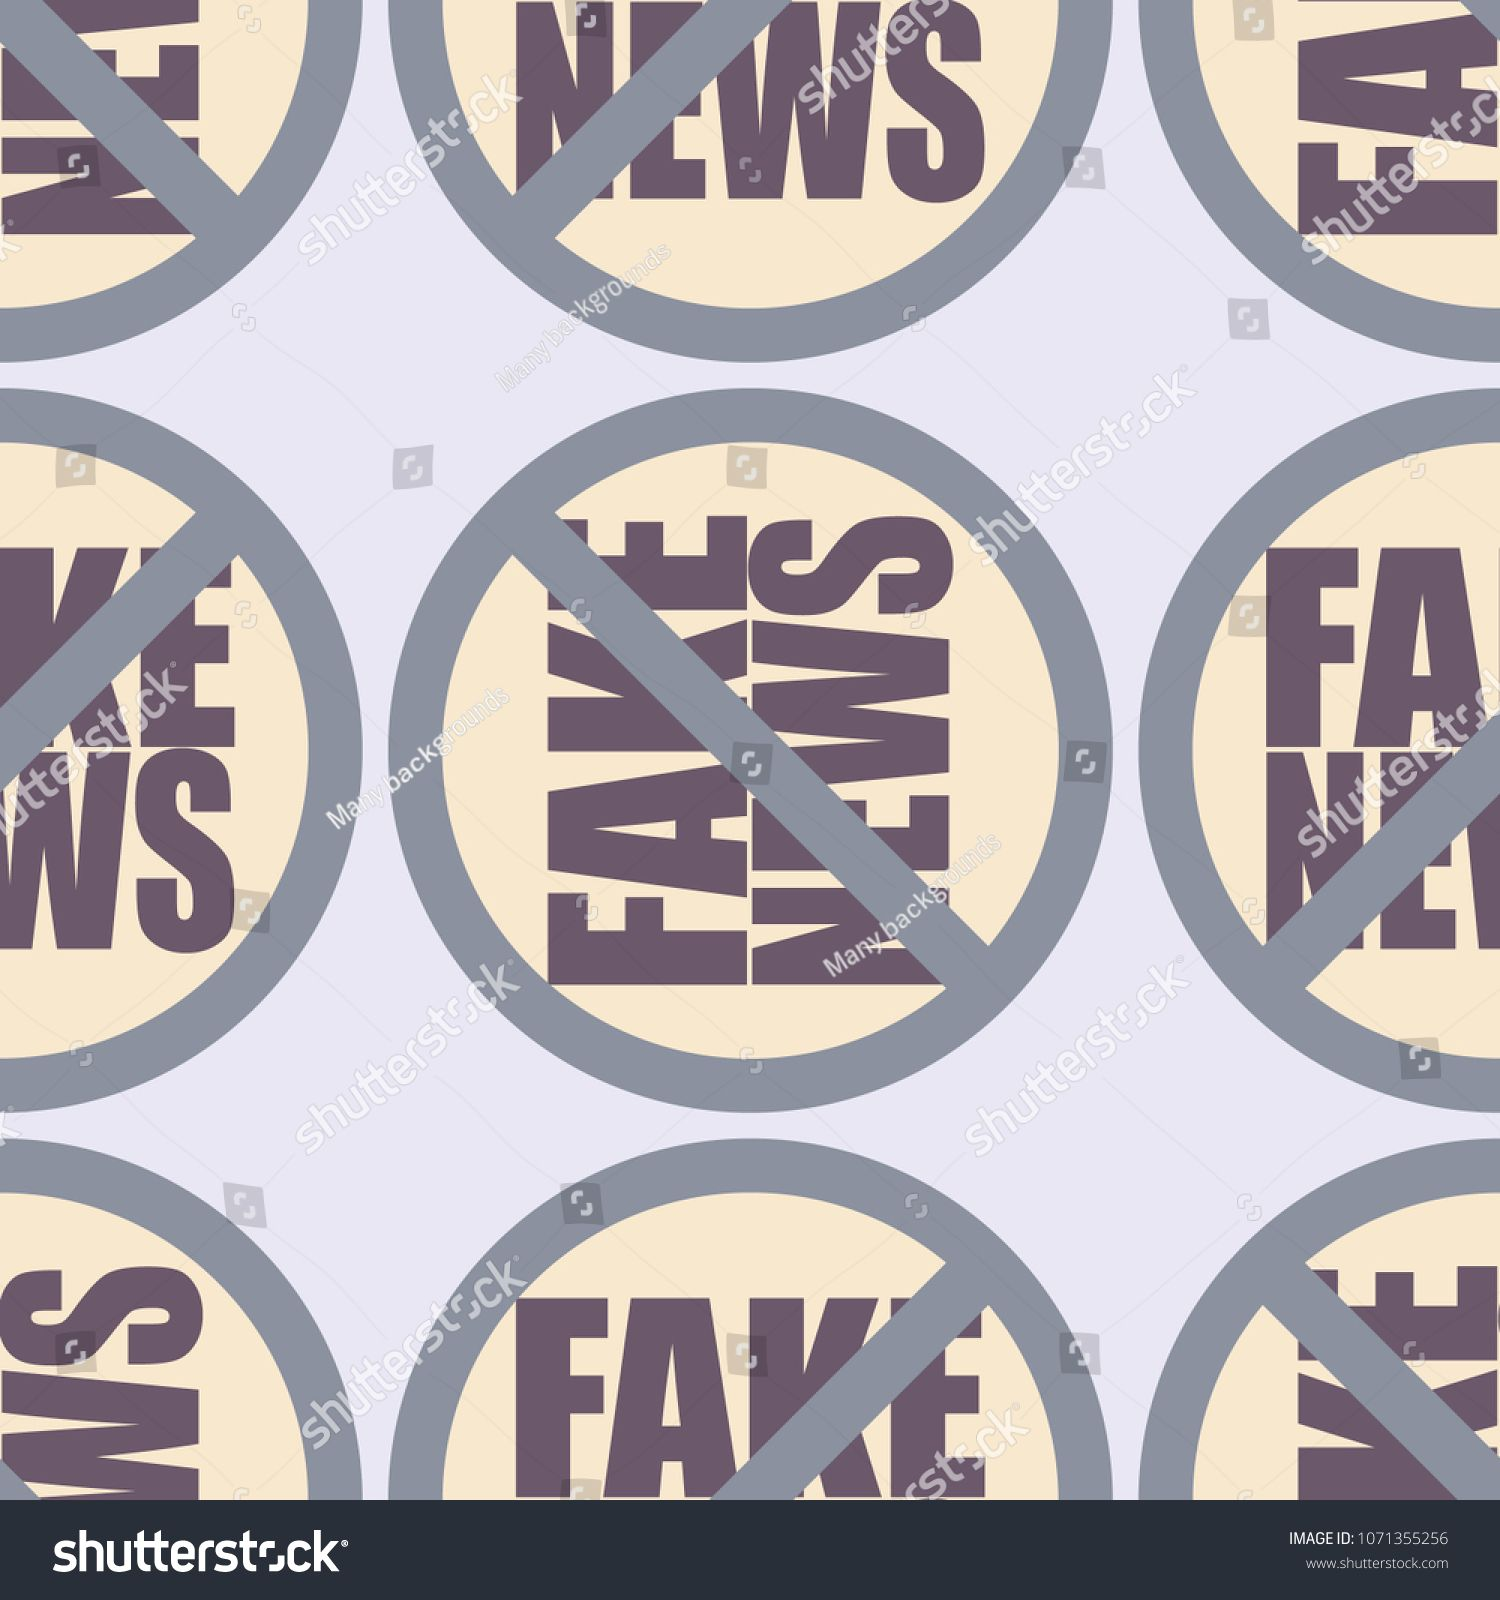 Conceptual Seamless Pattern With Logo Fake News Global Problems Of Humanity Ad Sponsored Pattern Logo Stock Illustration Seamless Patterns Illustration